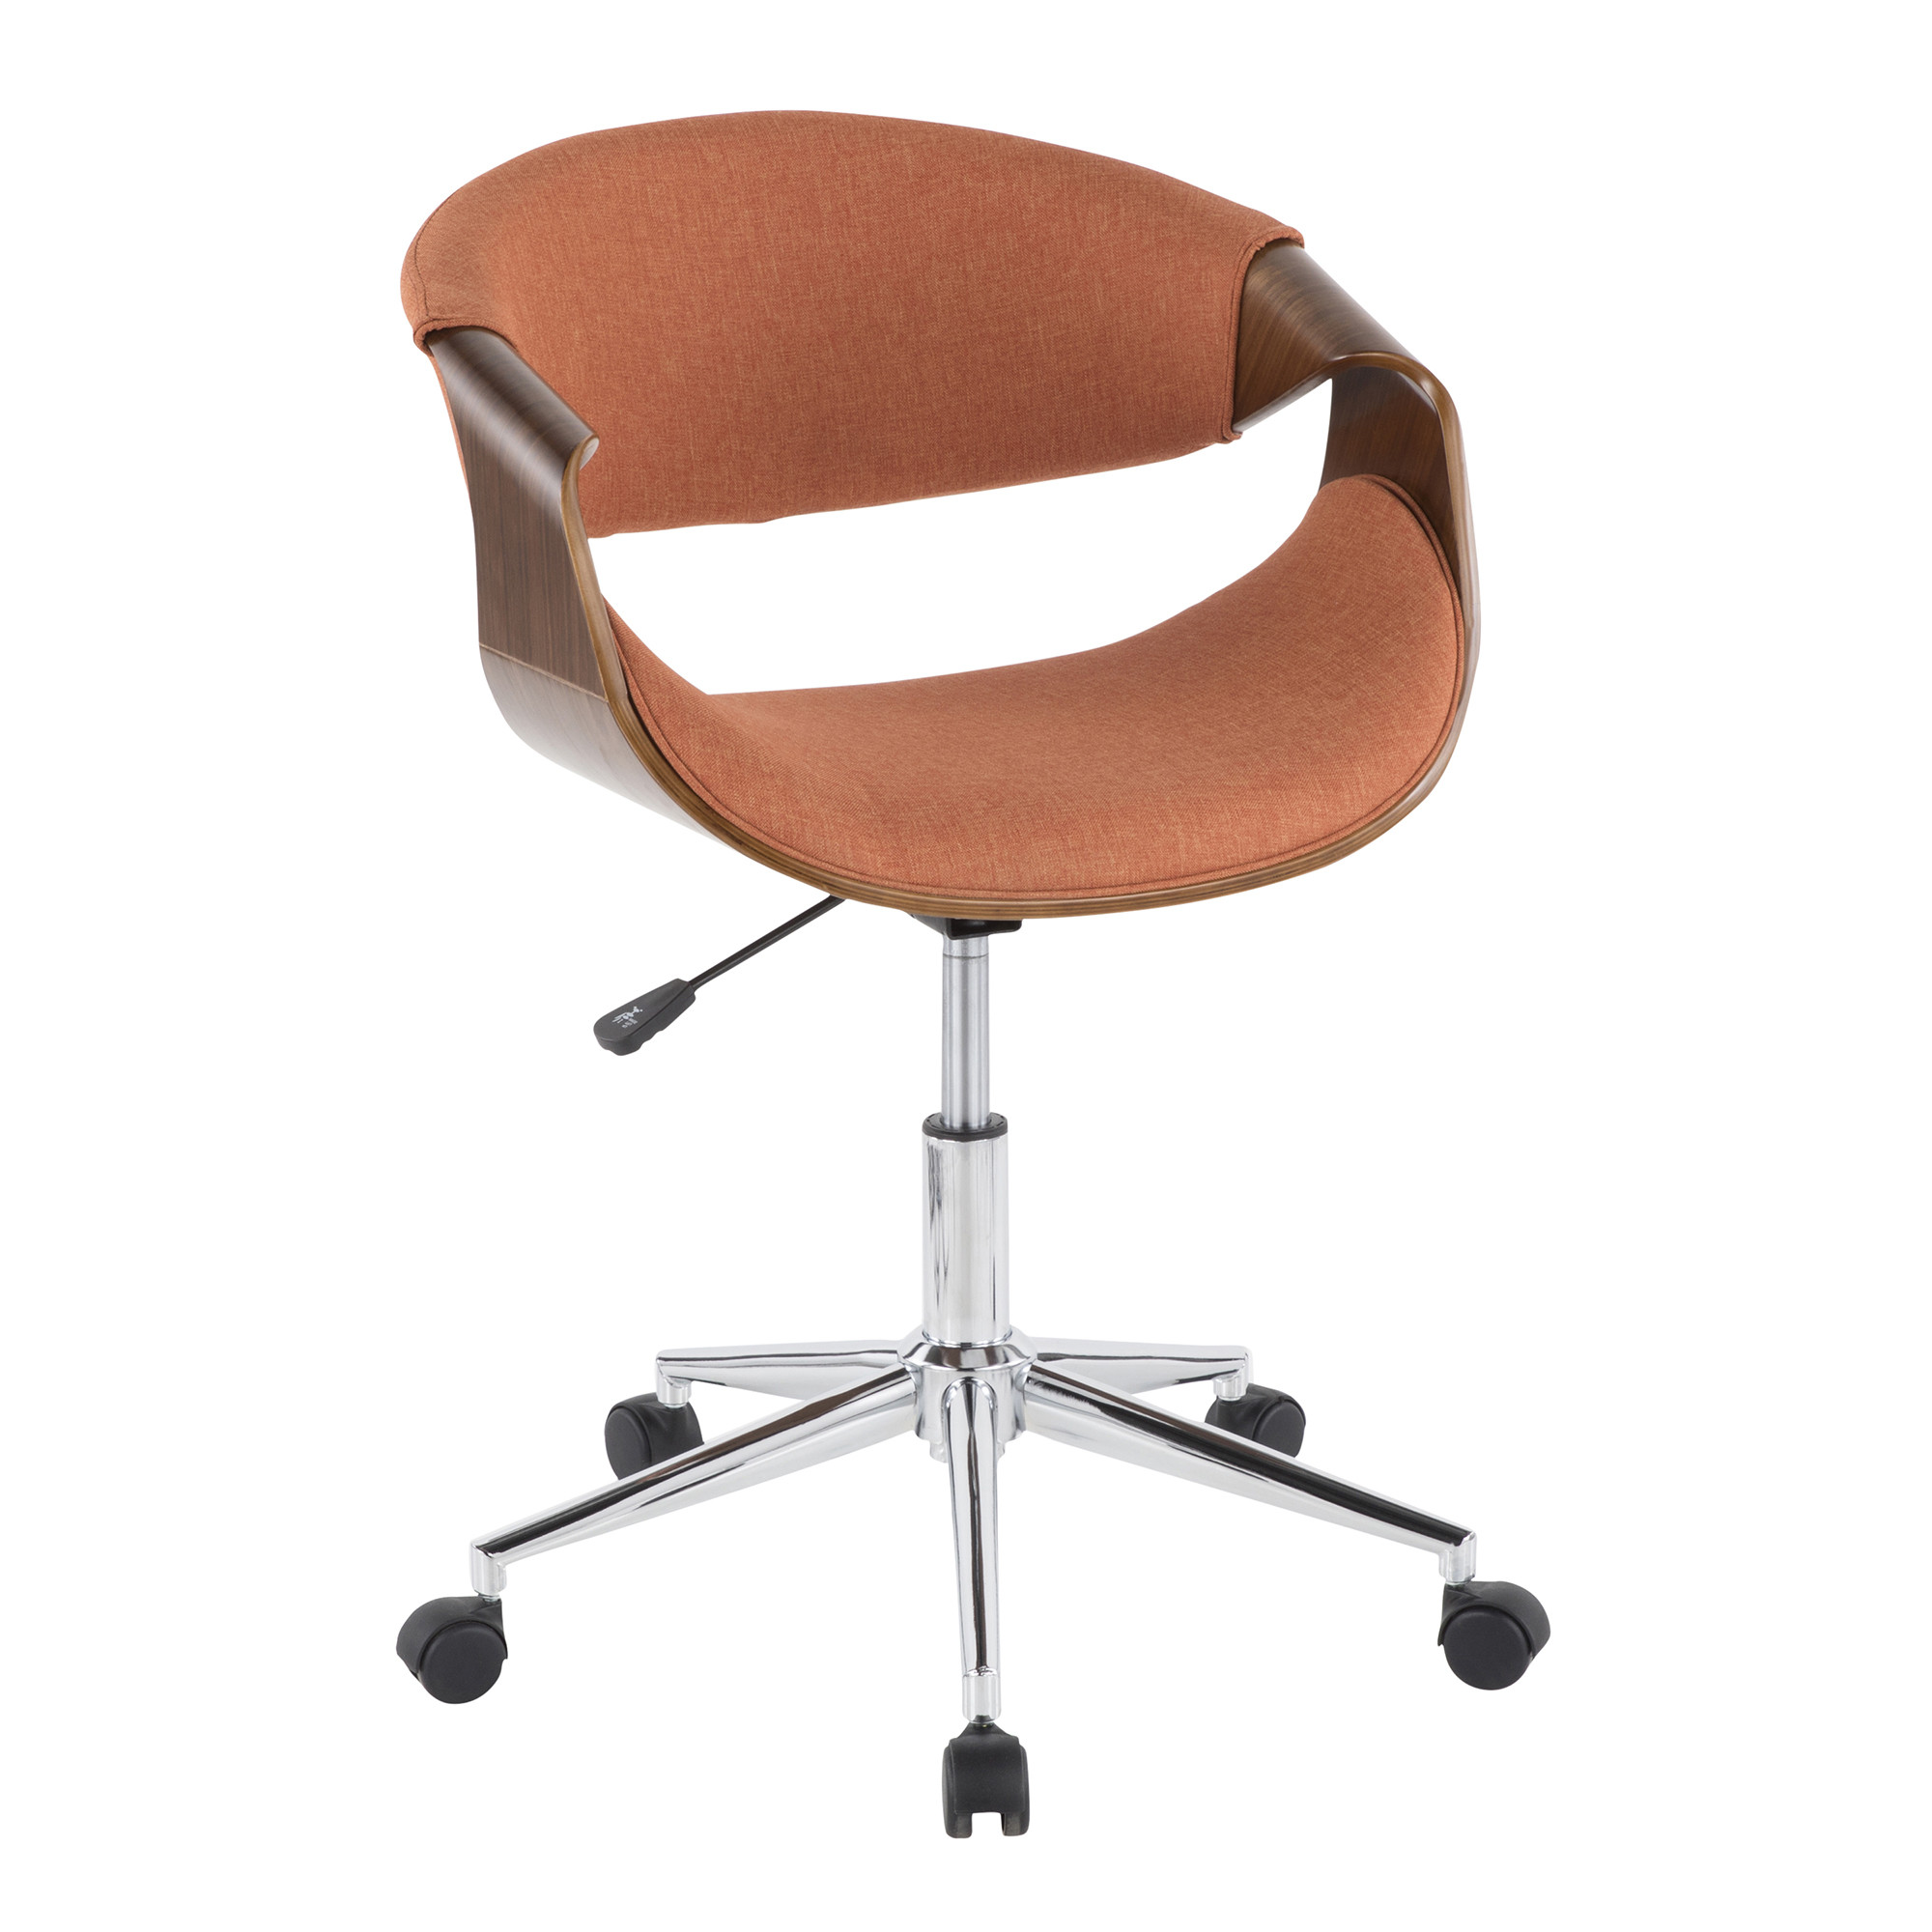 Walnut | Office | Fabric | Orange | Modern | Chair | Wood